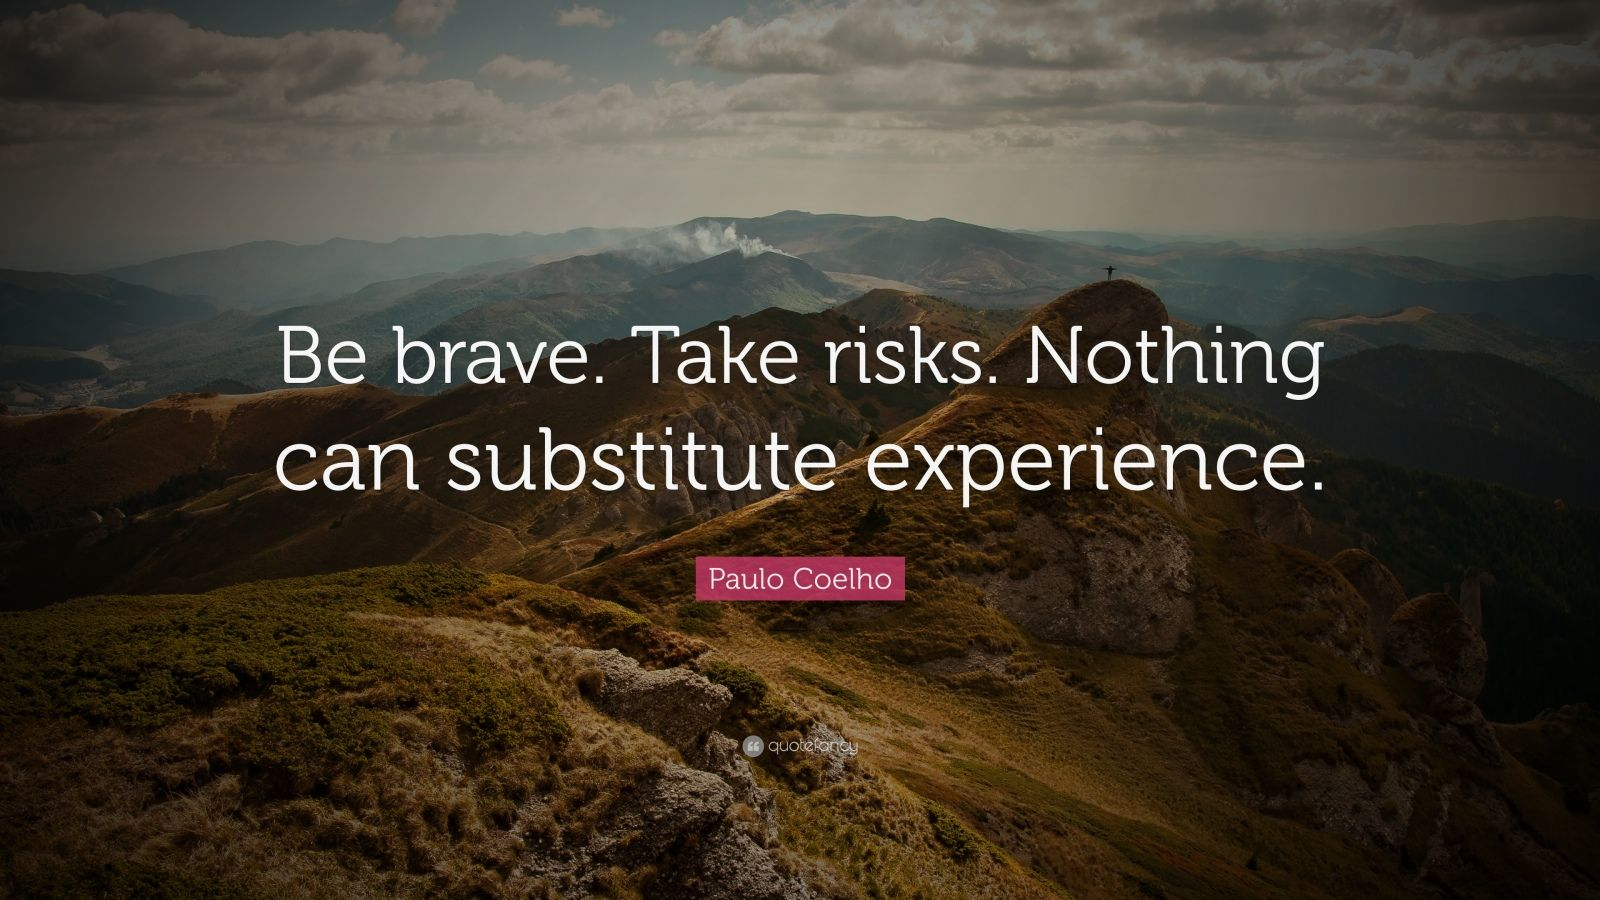 Motivational Quotes Images Hd Wallpapers Paulo Coelho Quote Be Brave Take Risks Nothing Can